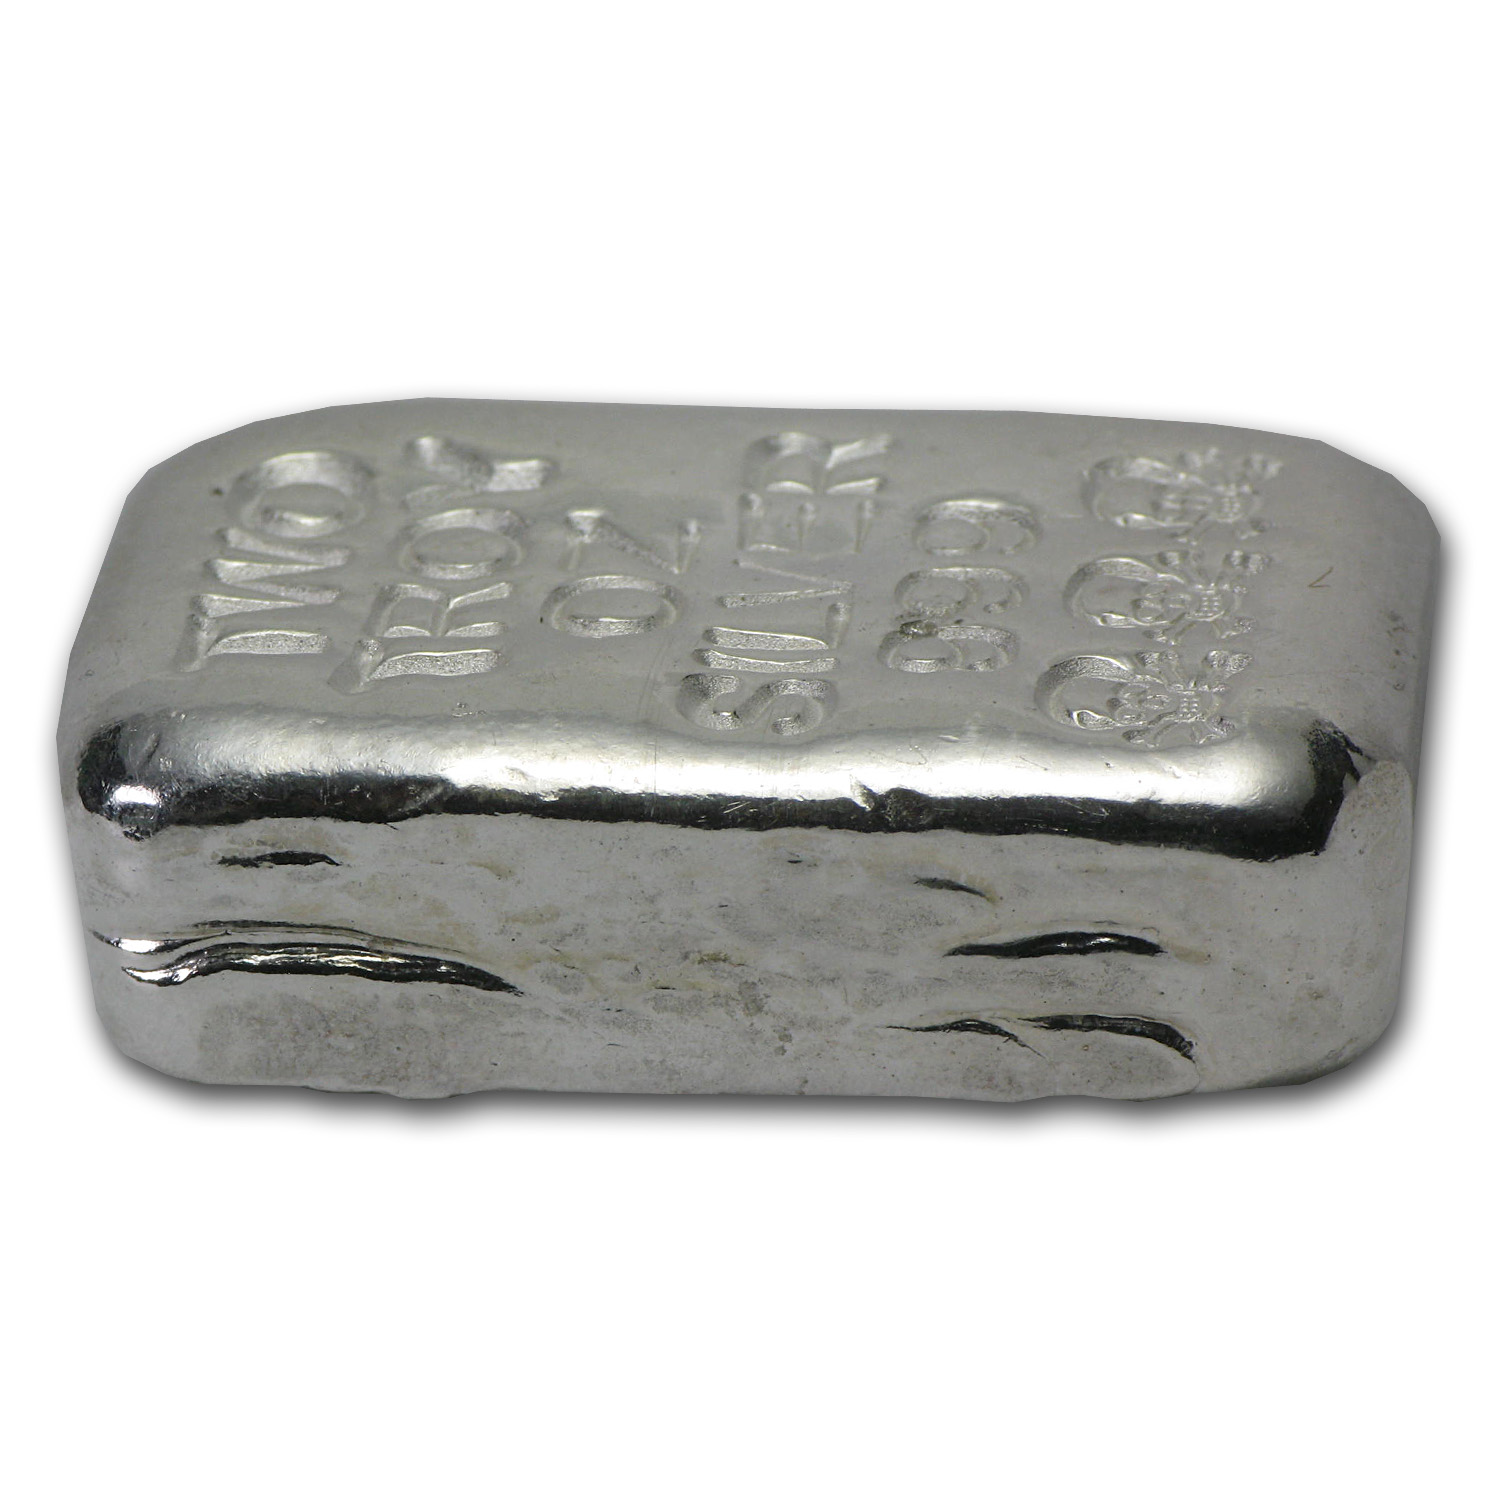 2 oz Silver Bars - Skull & Bones (Atlantis Mint)